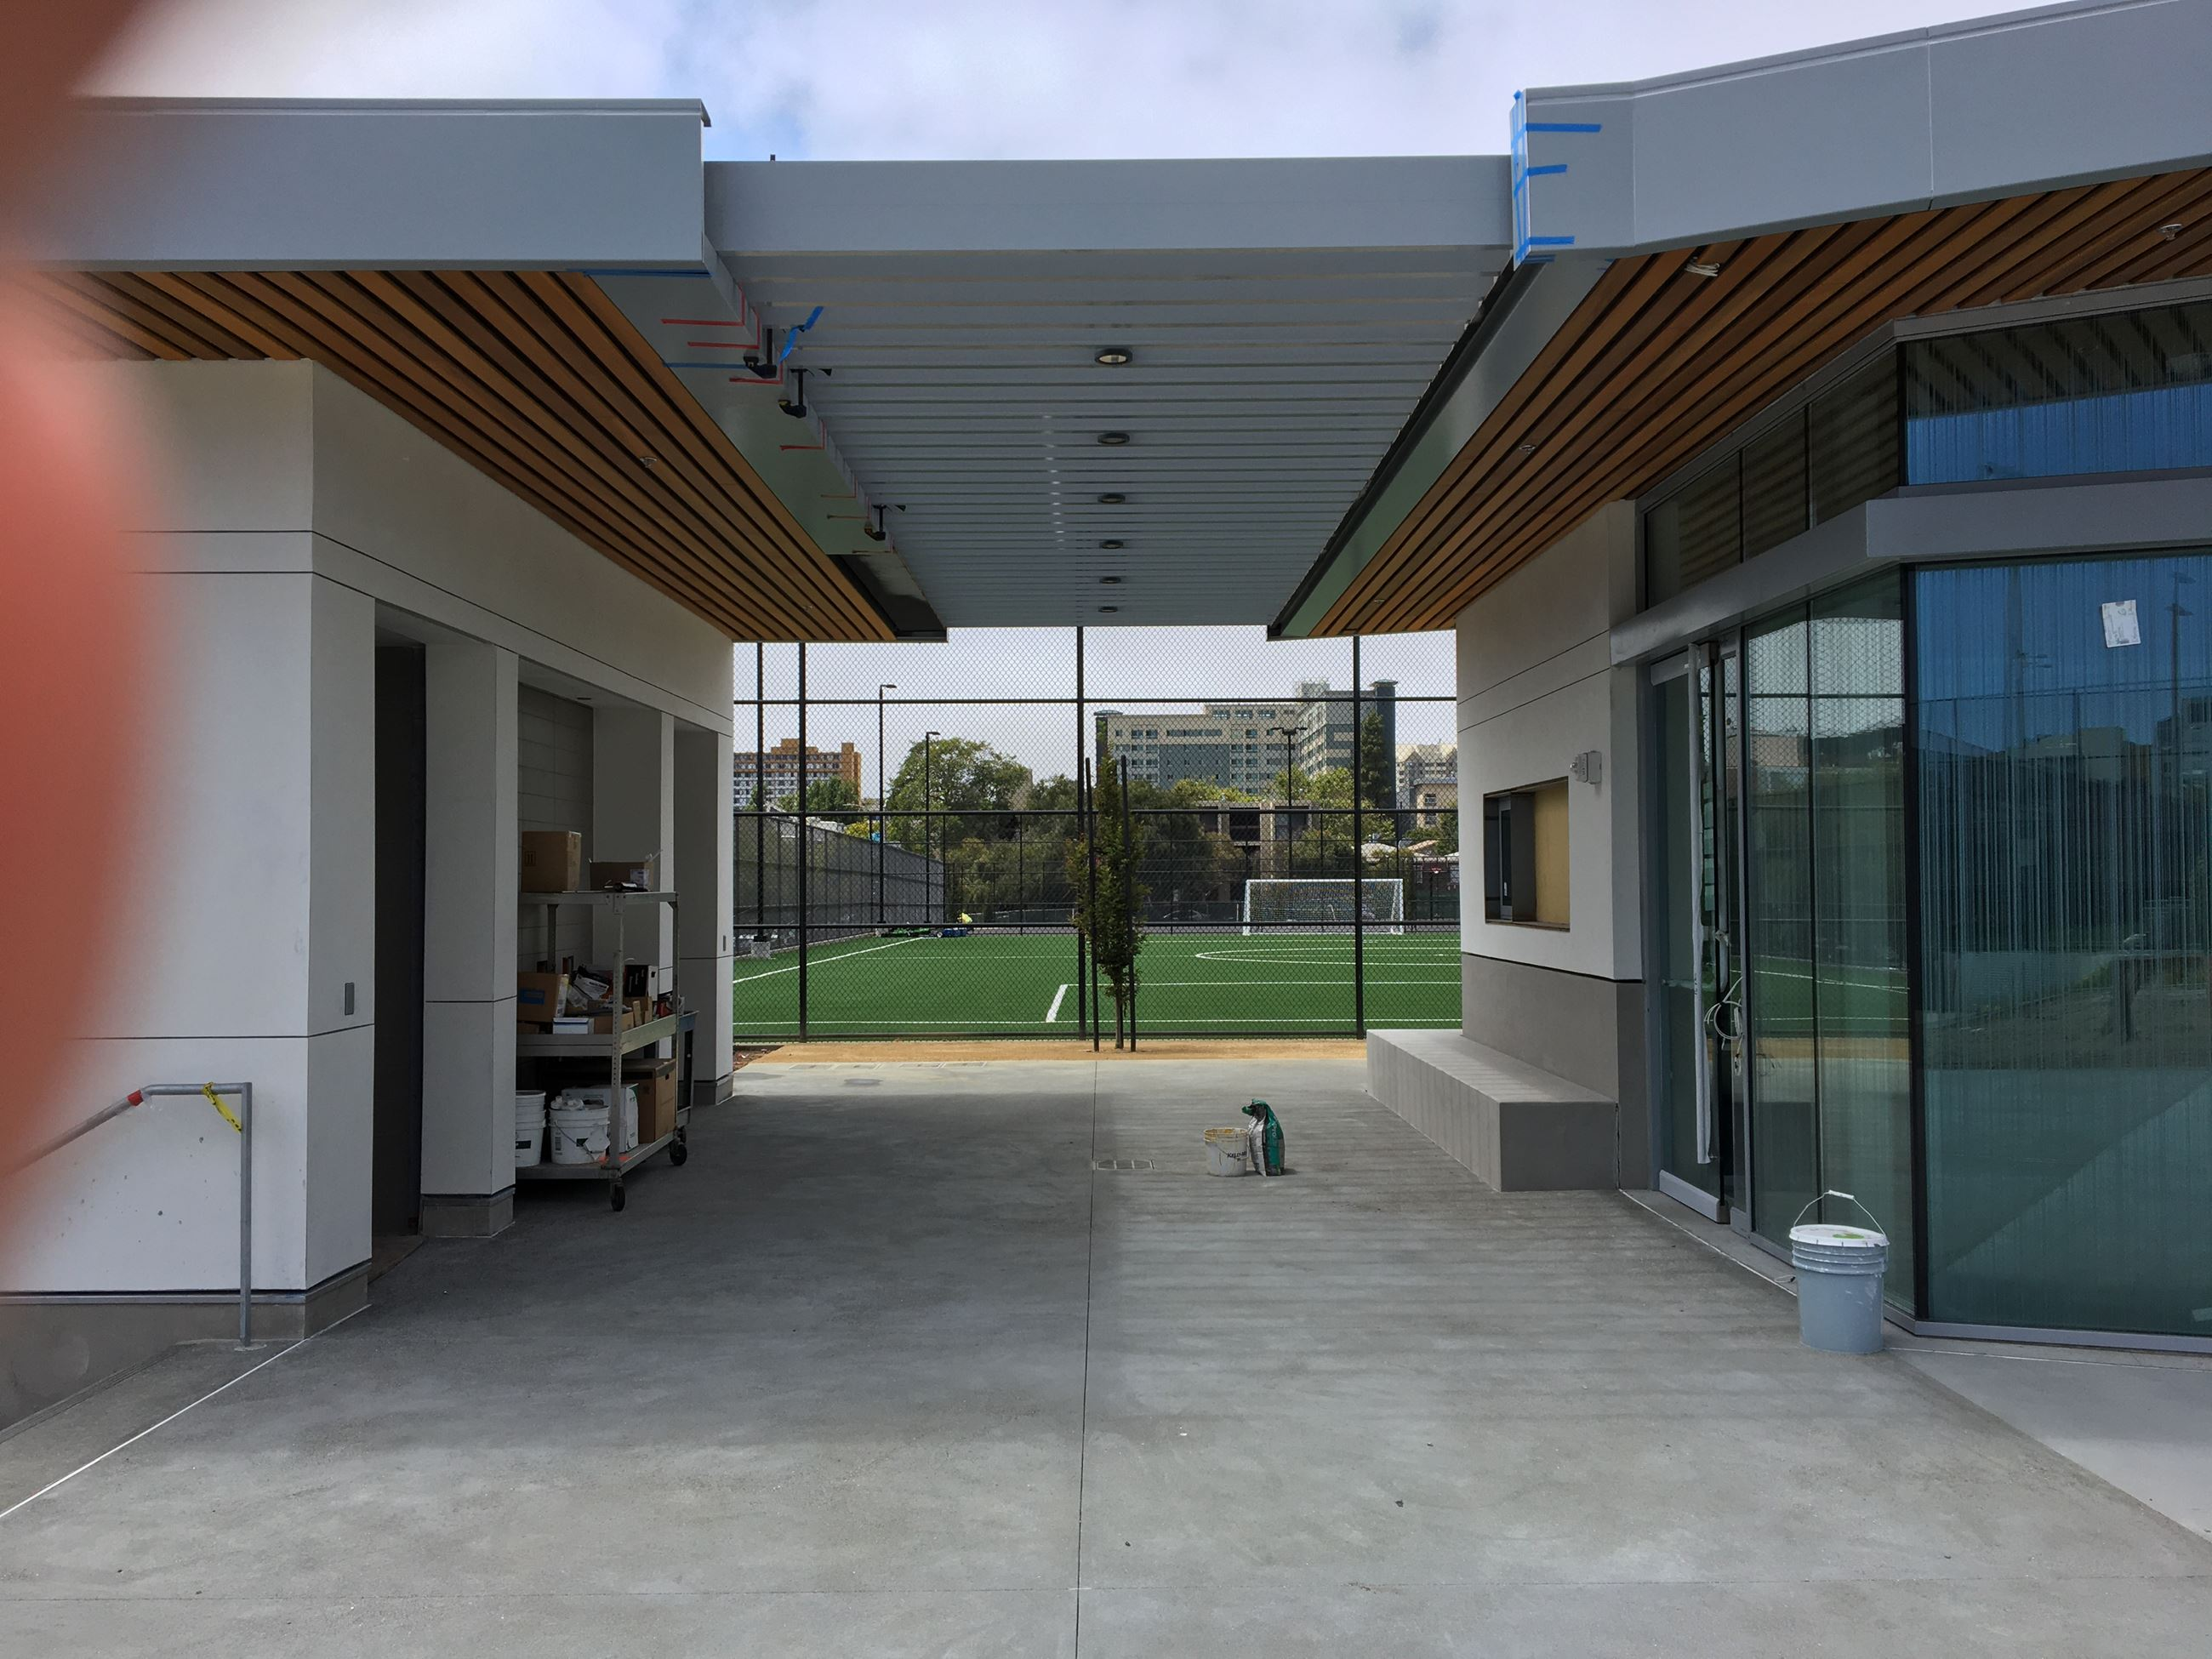 Foyer of the clubhouse with glass wall entrance on the right, covered in between restroom area,